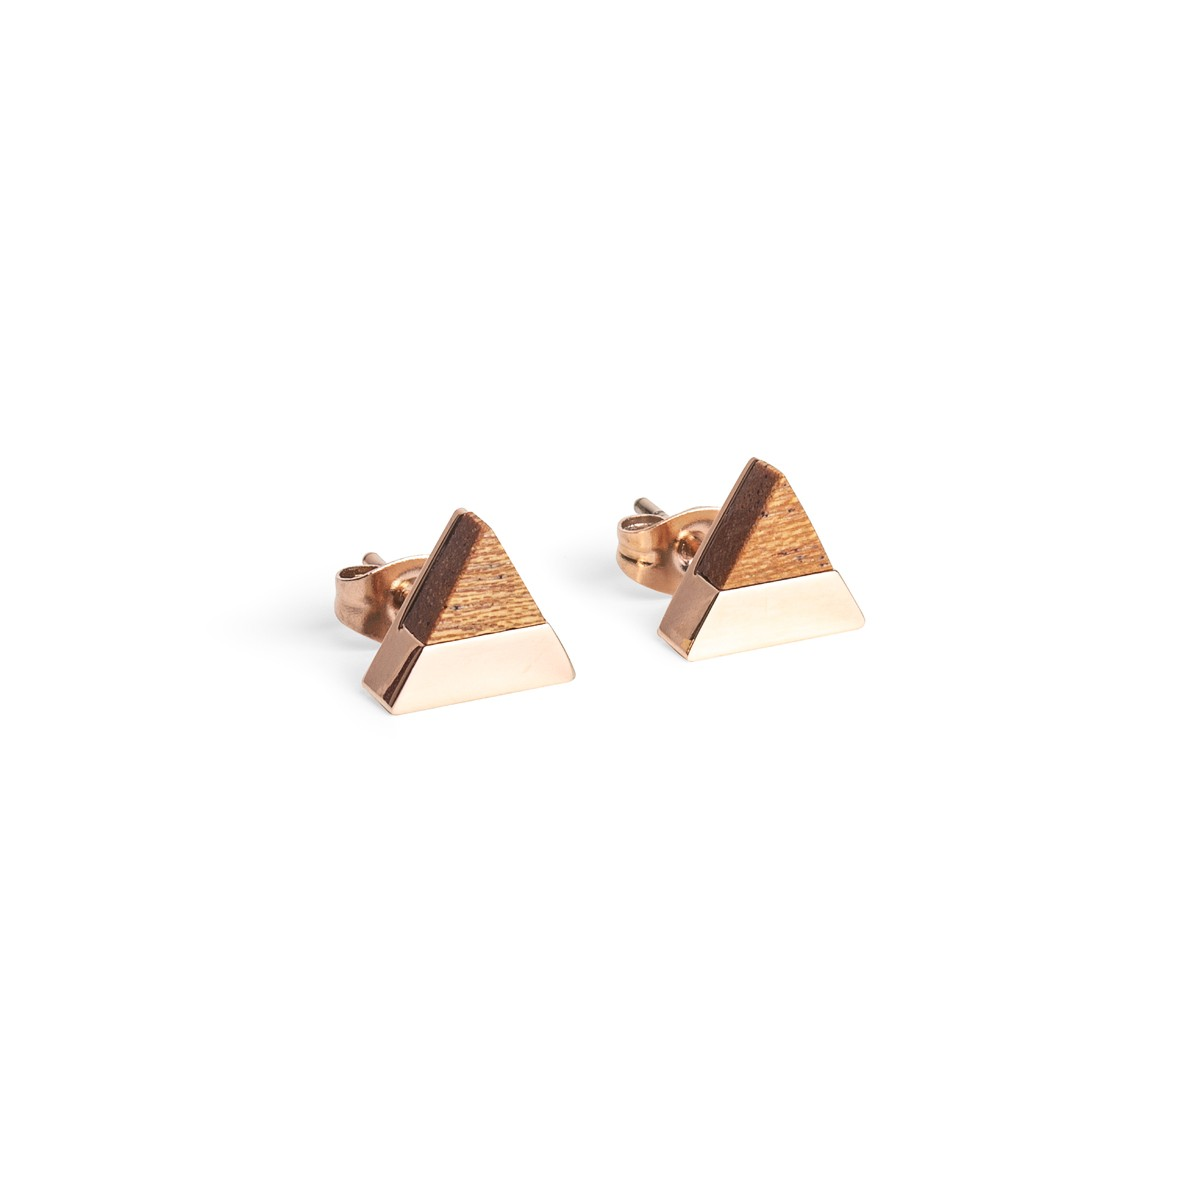 BeWooden Ohrringe - Ohrstecker mit Holzdetail - Rea Earrings Triangle